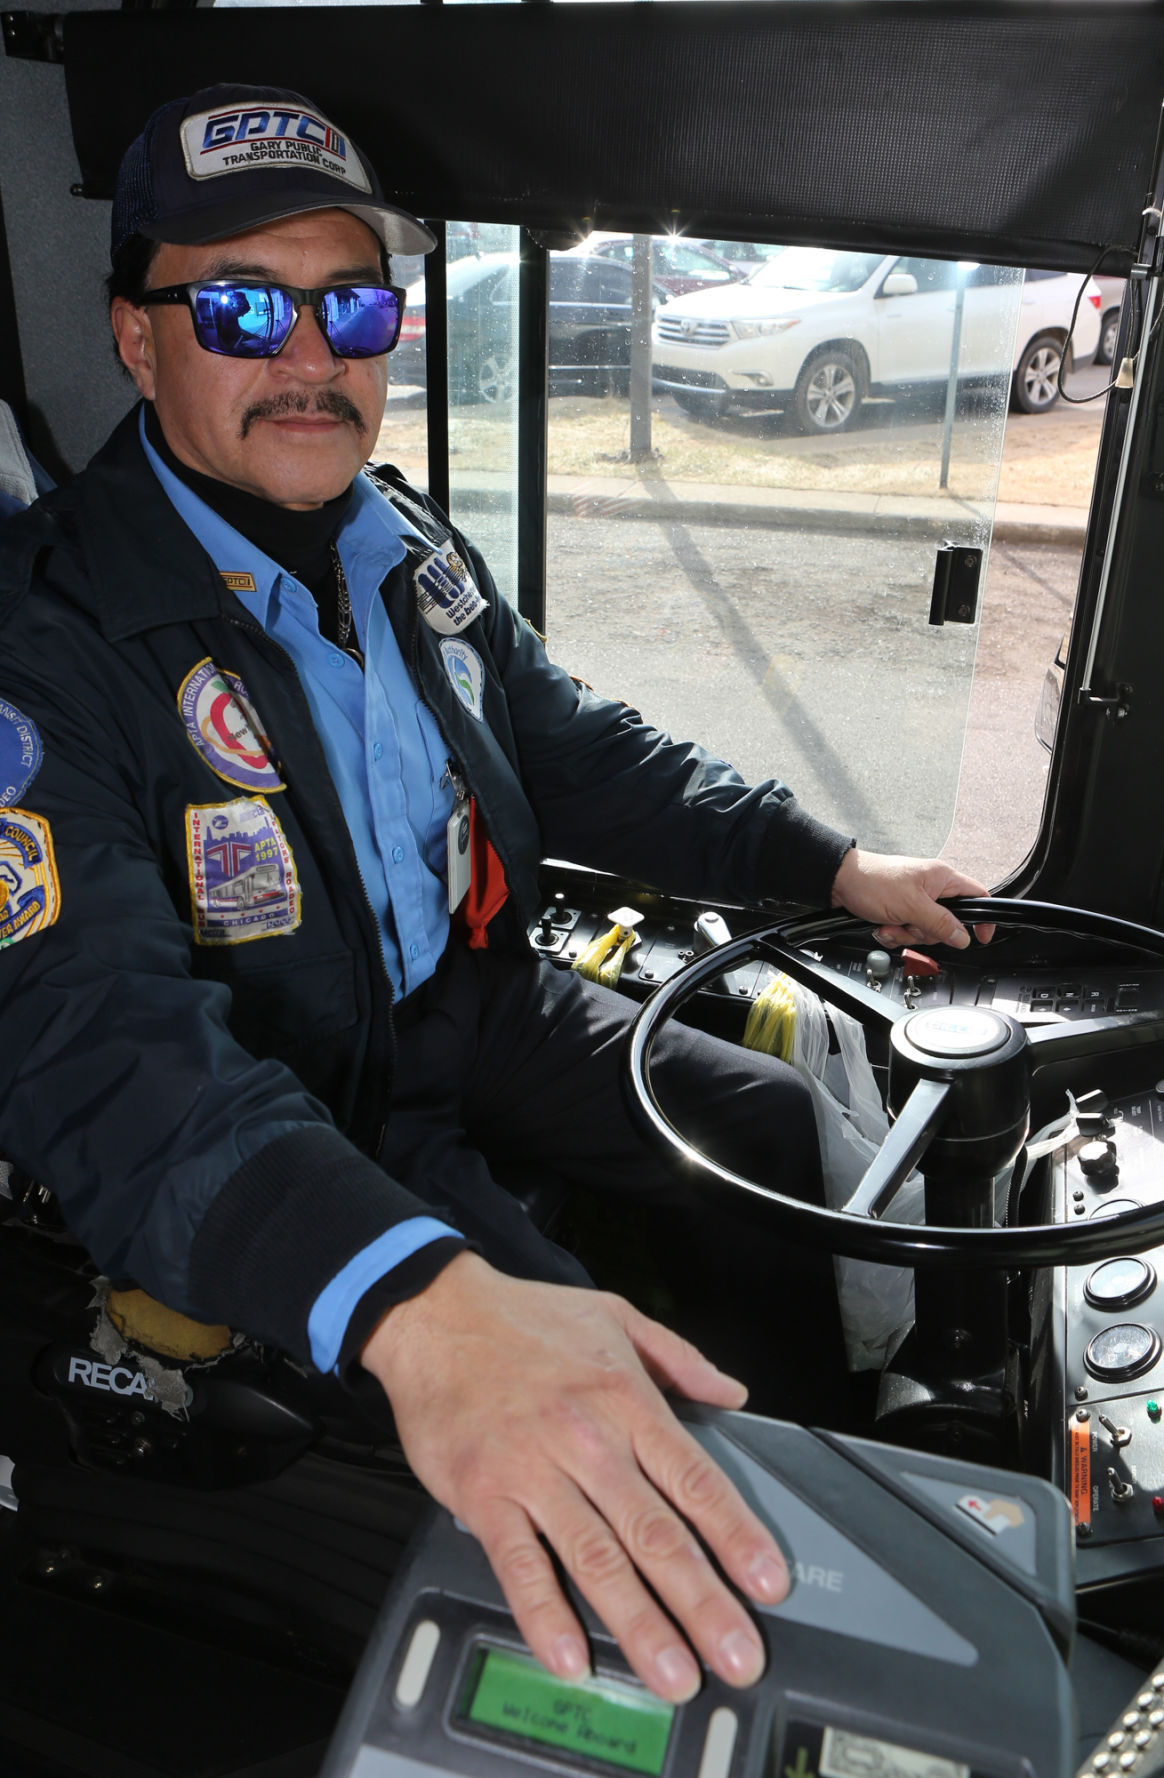 Amador Mandujano Jr. is a bus driver for the Gary Public Transit Corp.